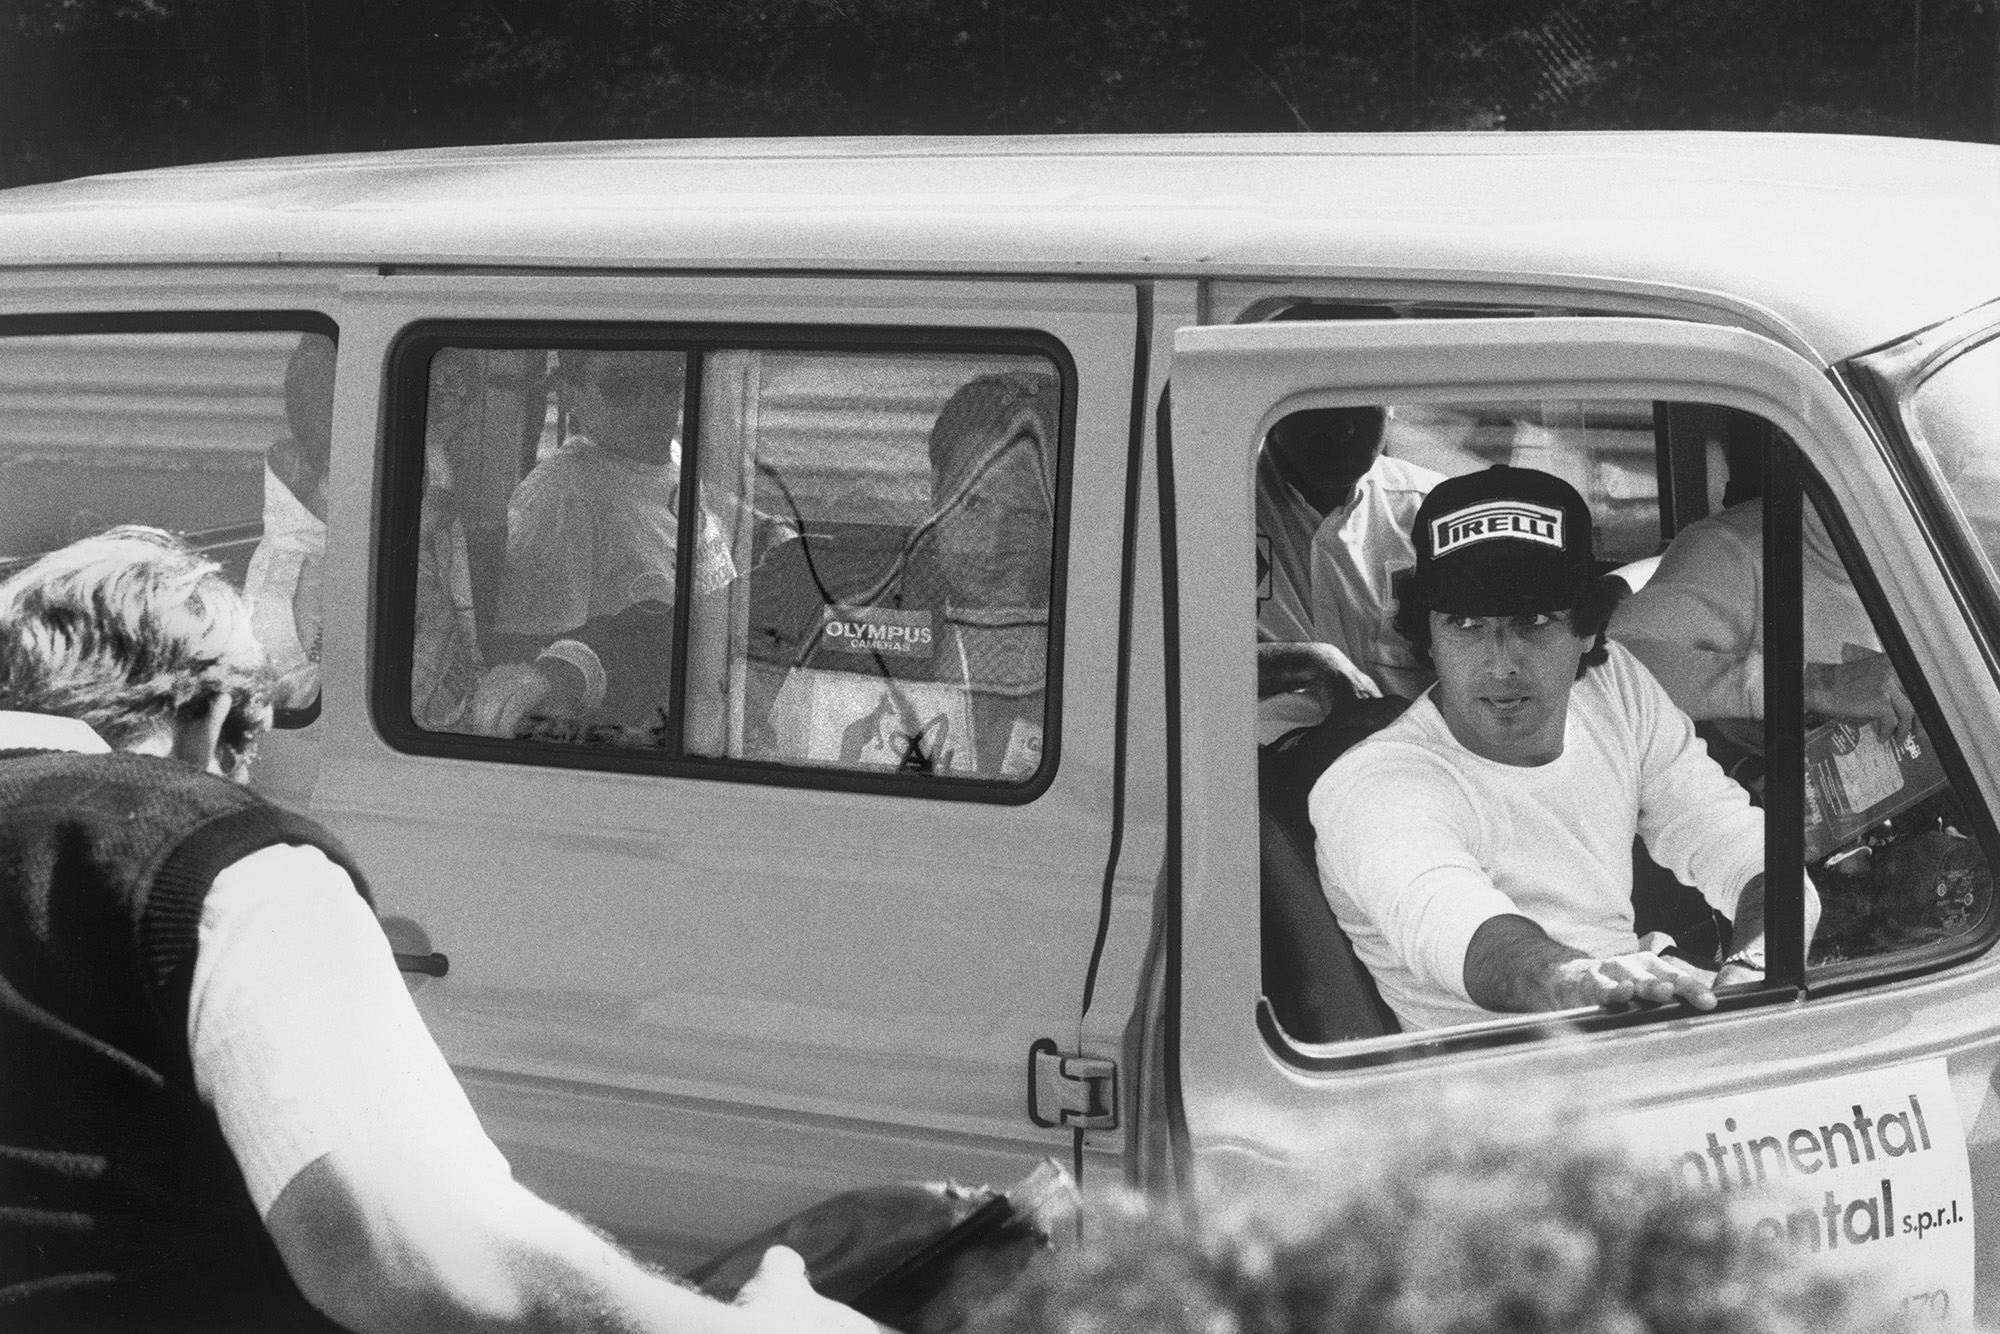 Nelson Piquet steps out of a minibus with other drivers to inspect the damage track at Spa ahead of the cancelled 1985 Belgian Grand Prix